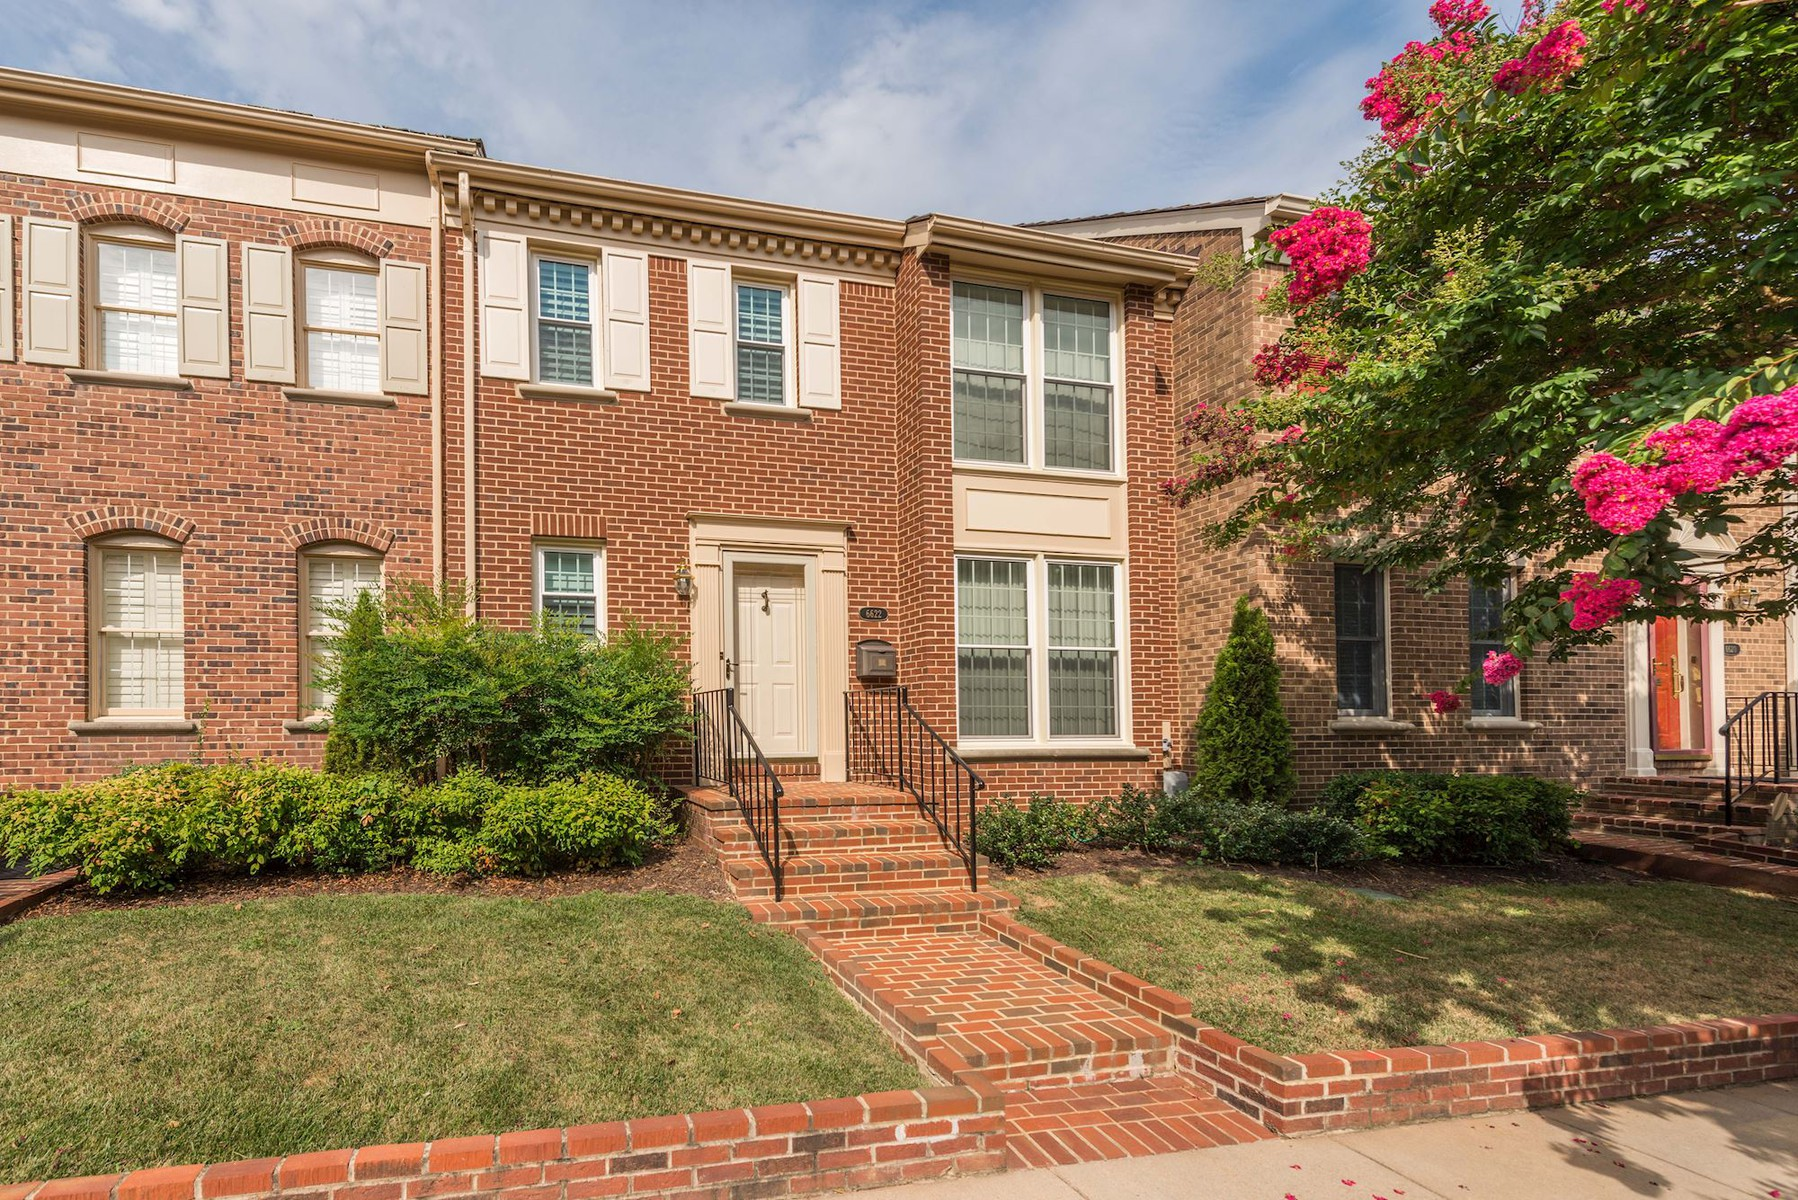 Townhouse for Sale at Madison of McLean 6622 Madison Mclean Dr McLean, Virginia 22101 United States